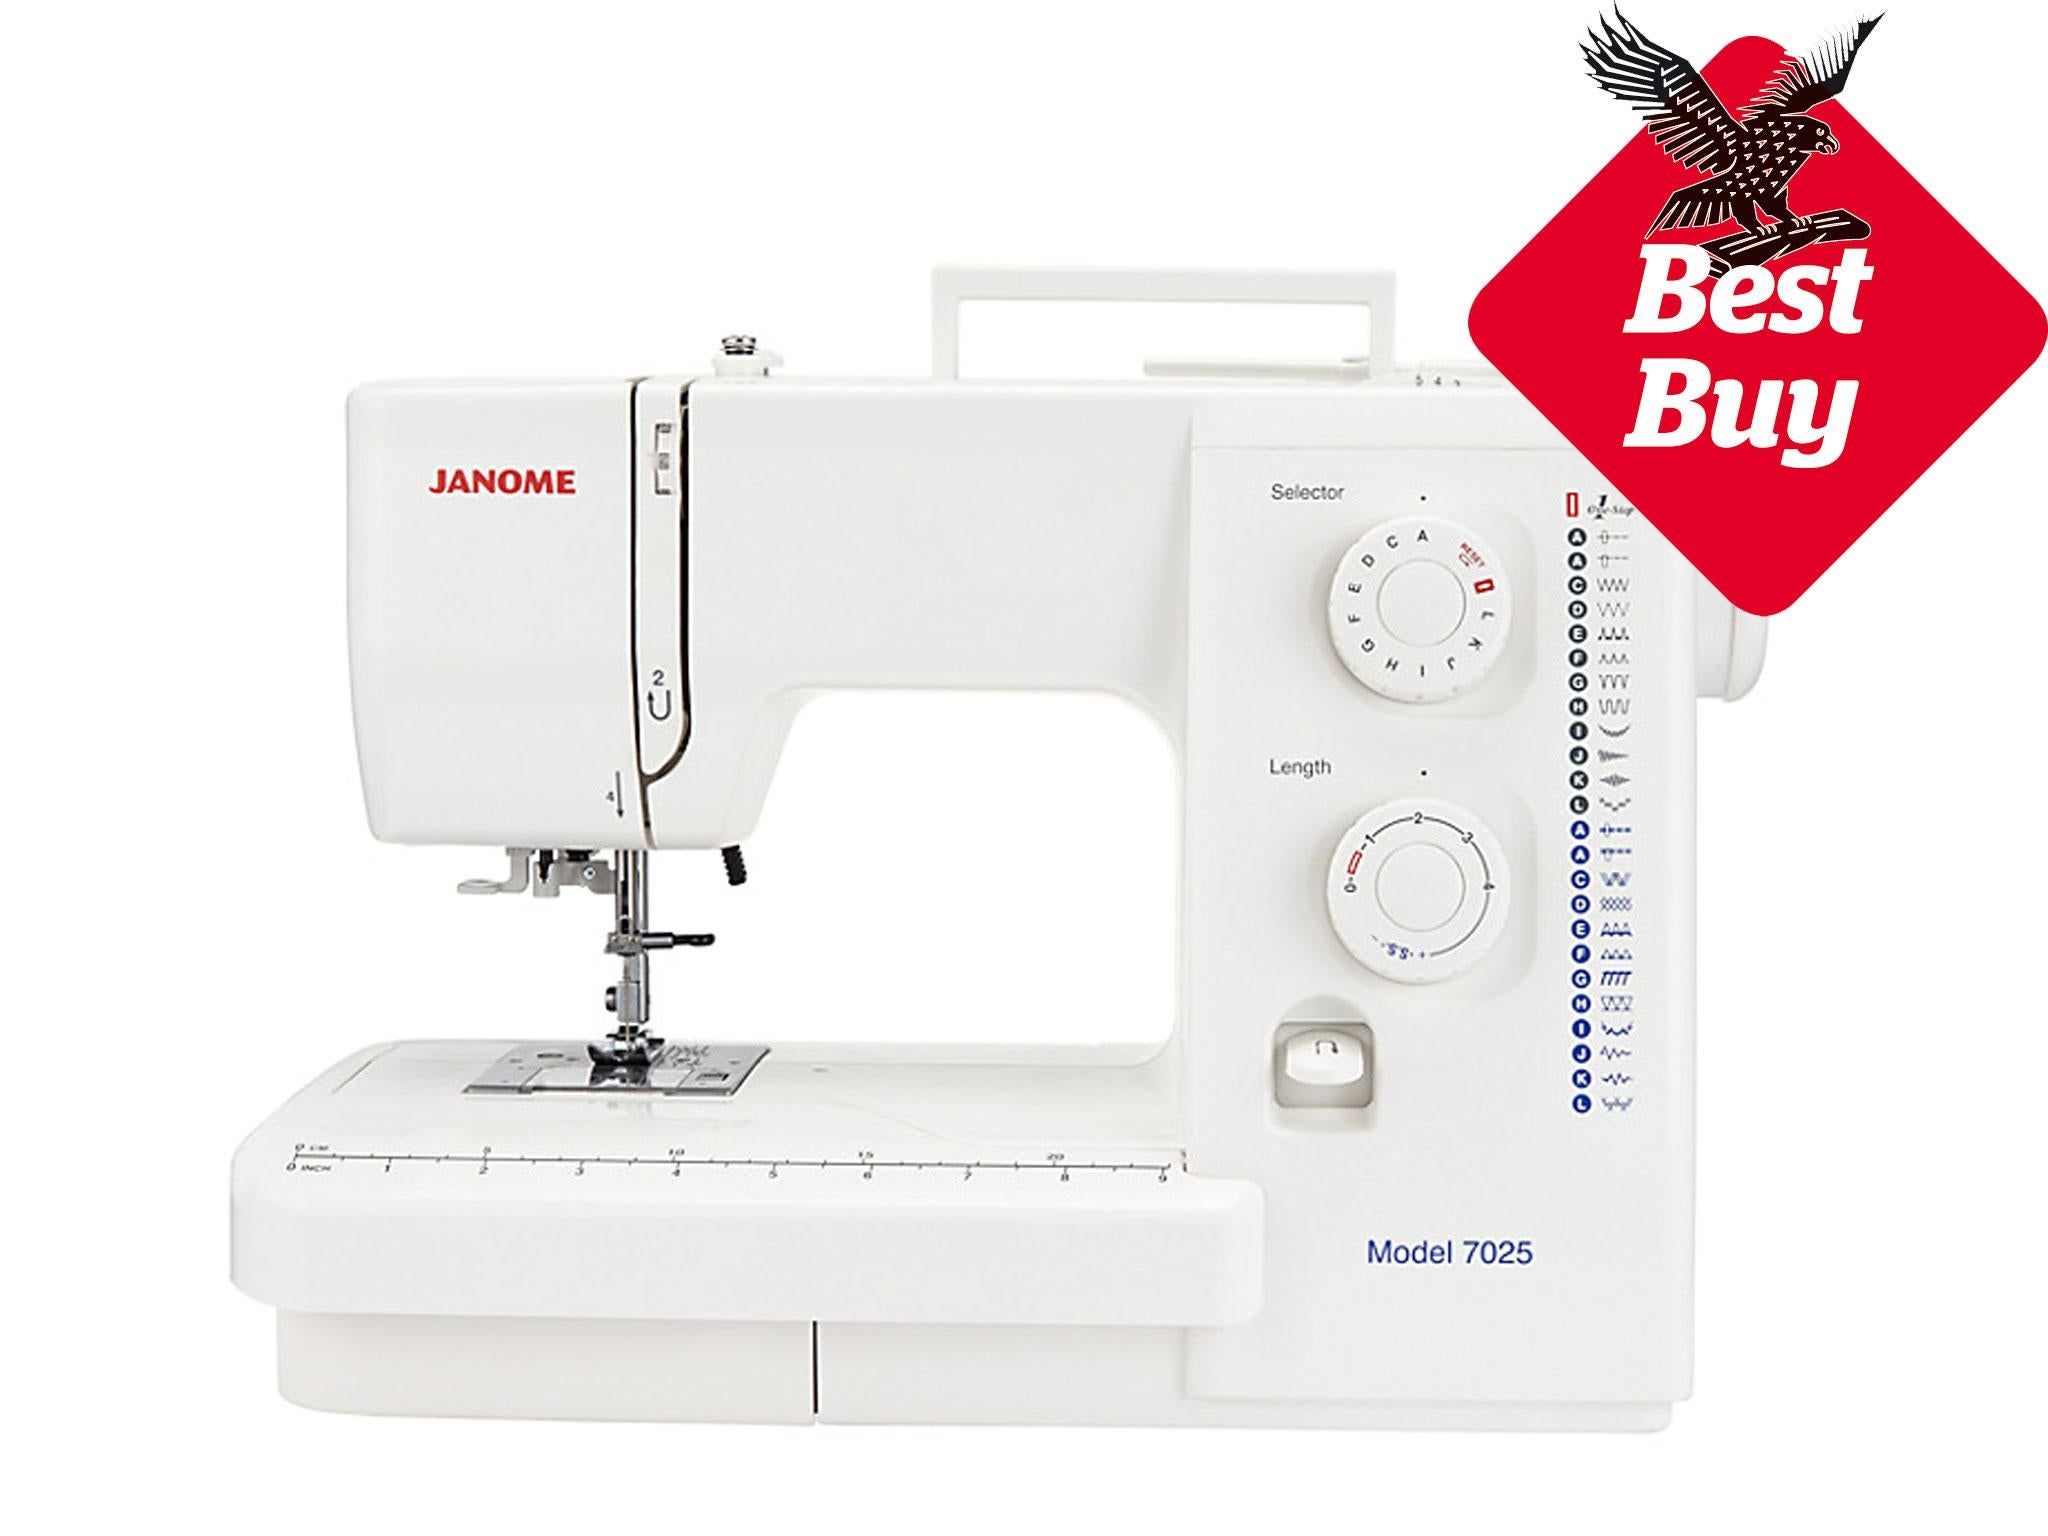 7 best sewing machines for beginners the independent janome 7025 sewing machine 219 john lewis fandeluxe Gallery